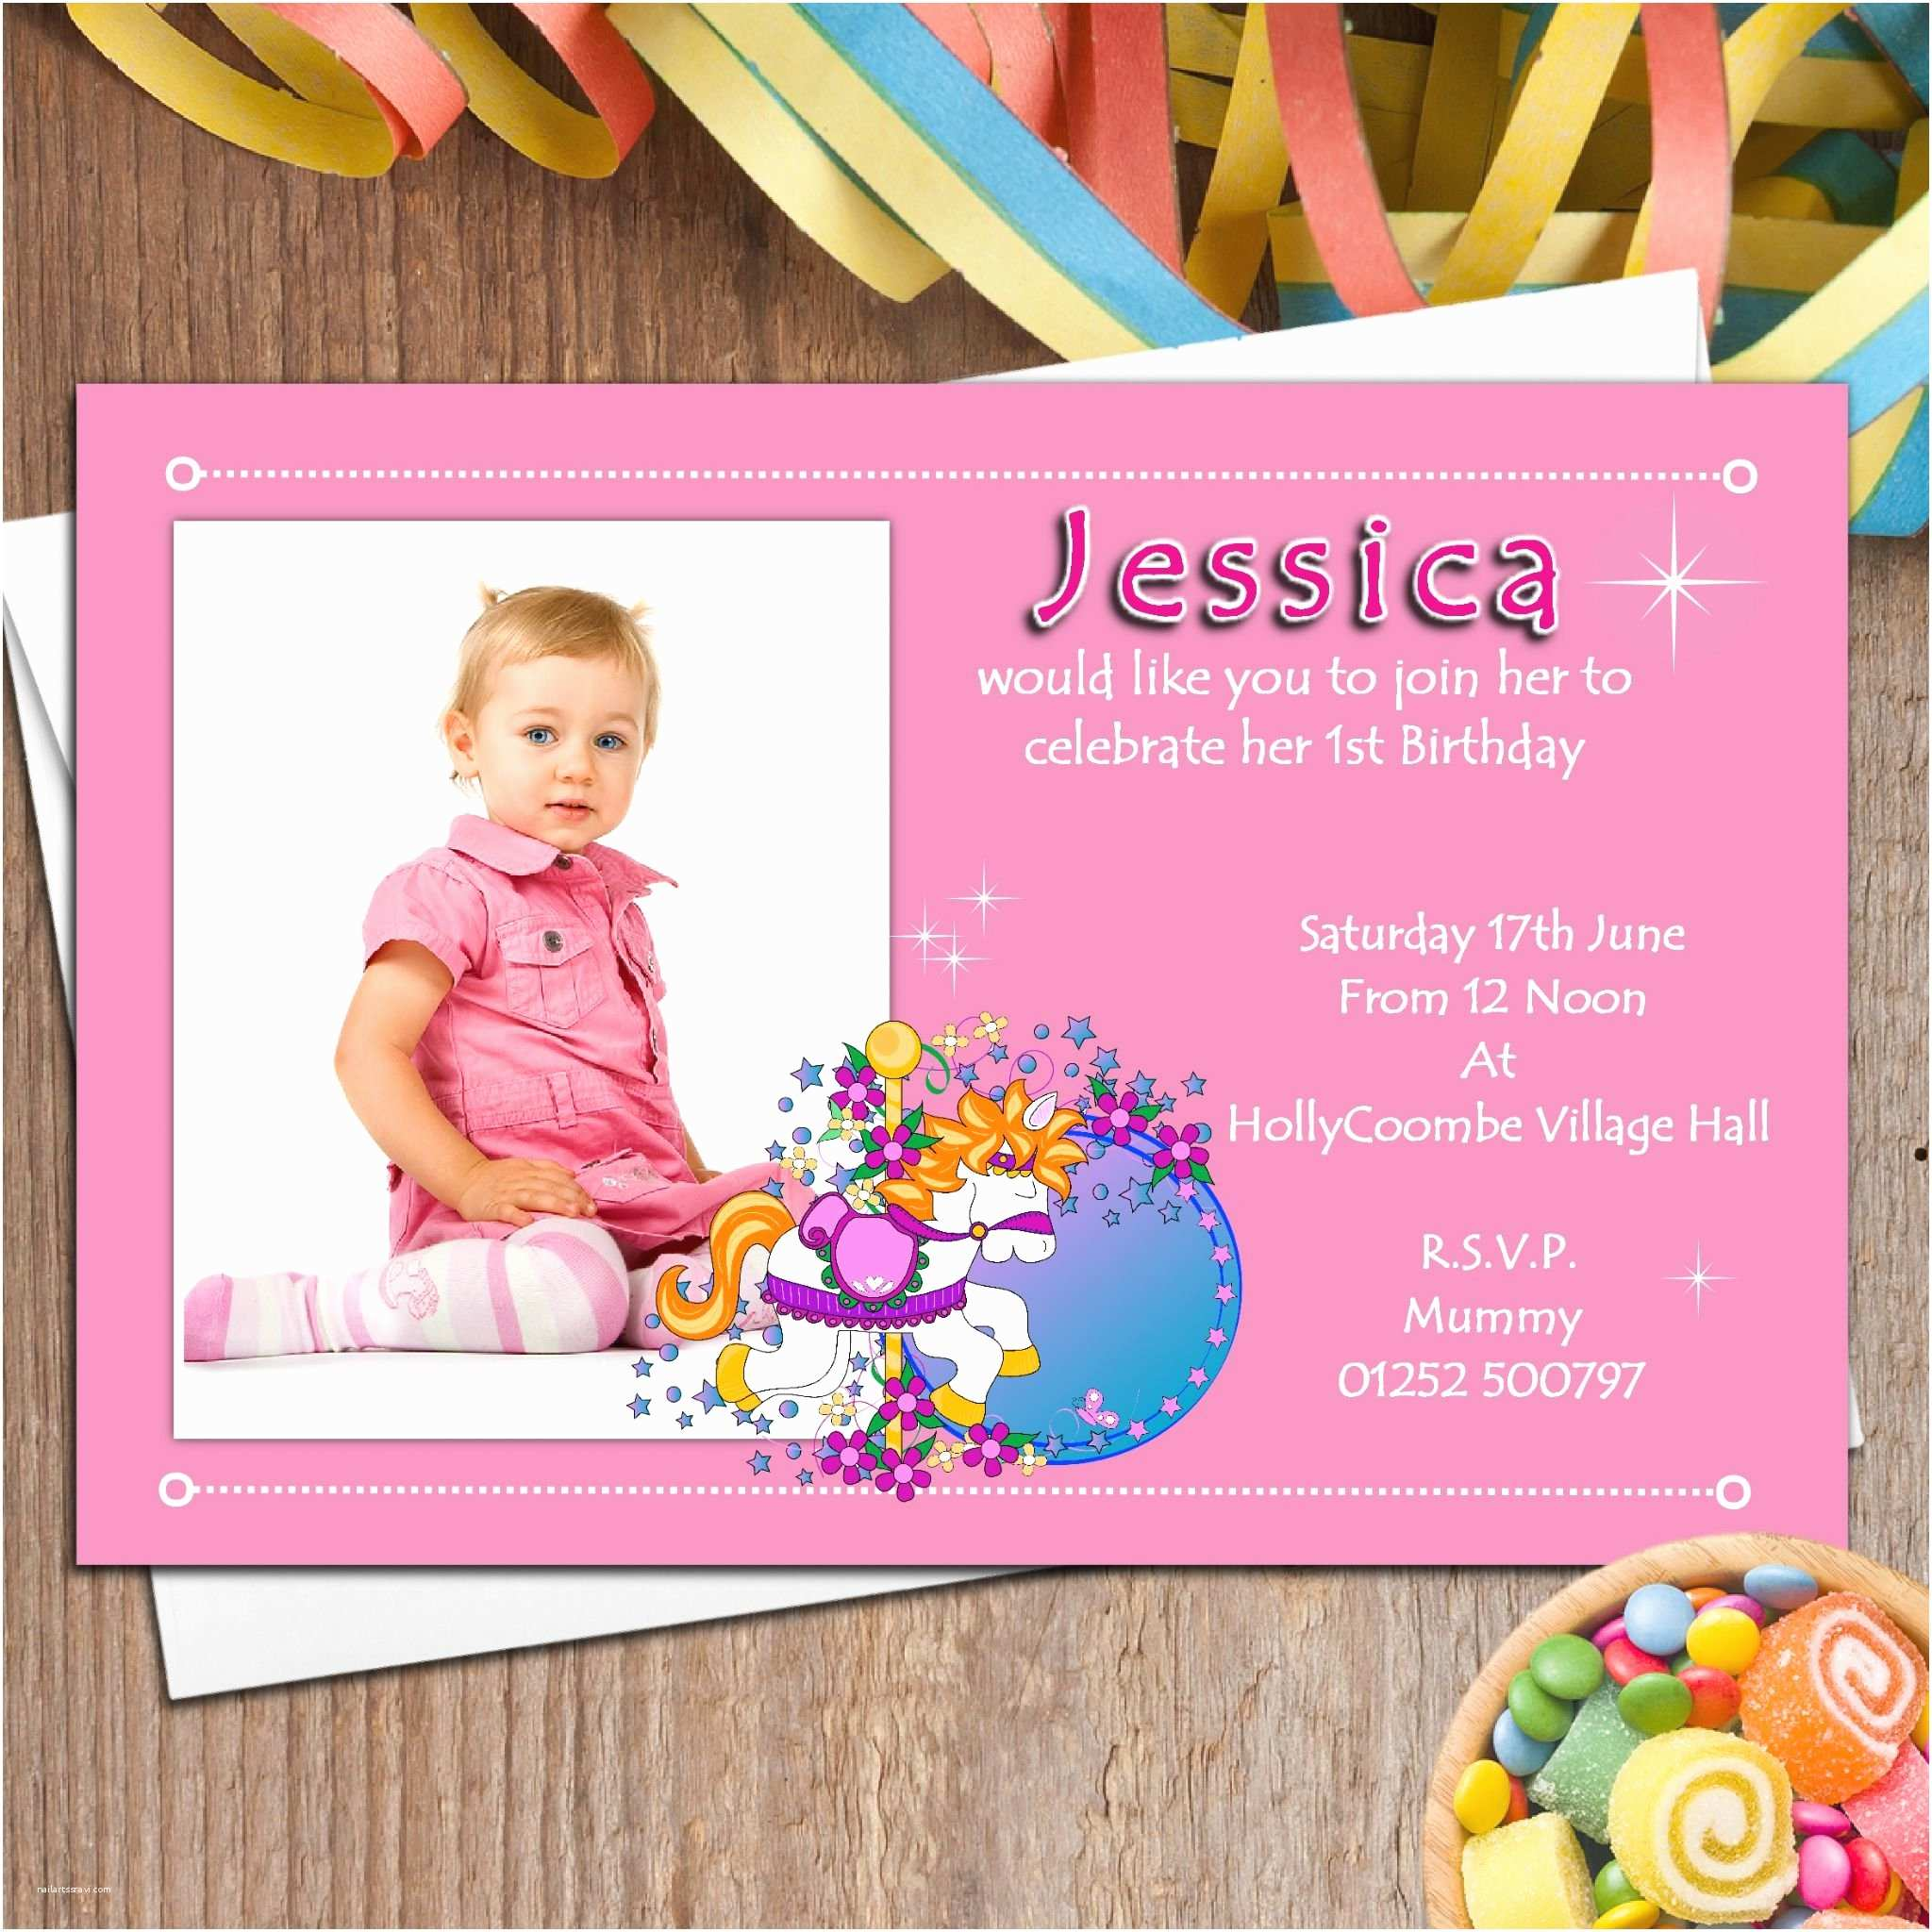 Personalized Birthday Invitations Birthday Cards Near Me – Gangcraft